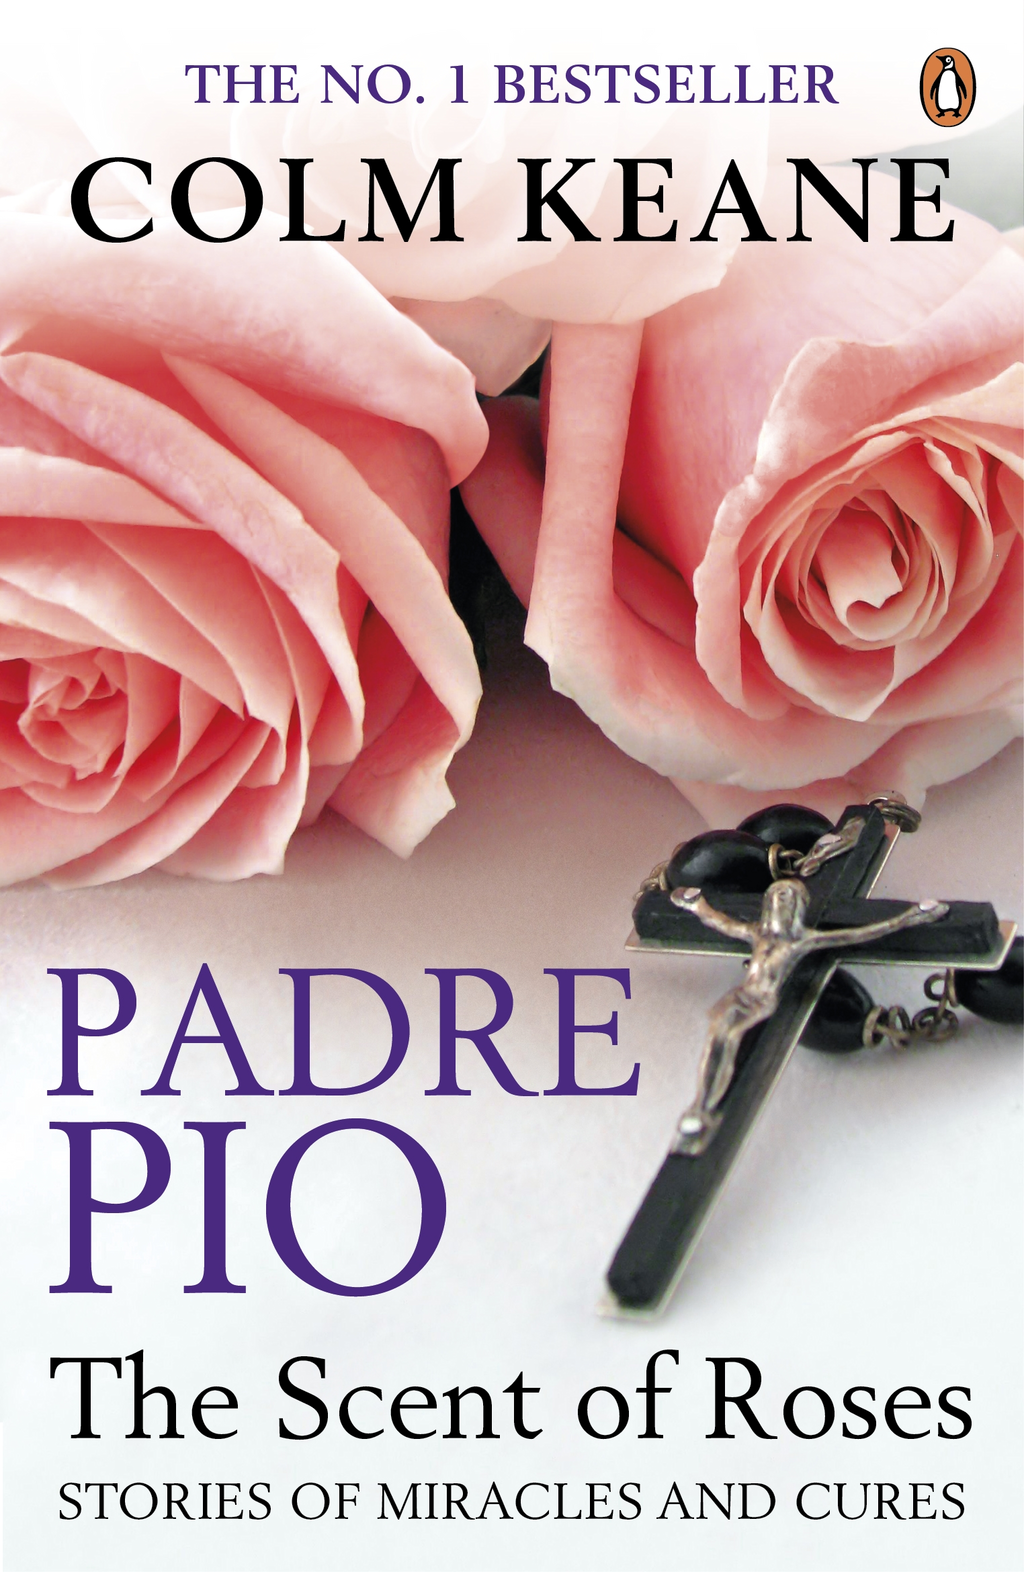 Padre Pio The Scent of Roses